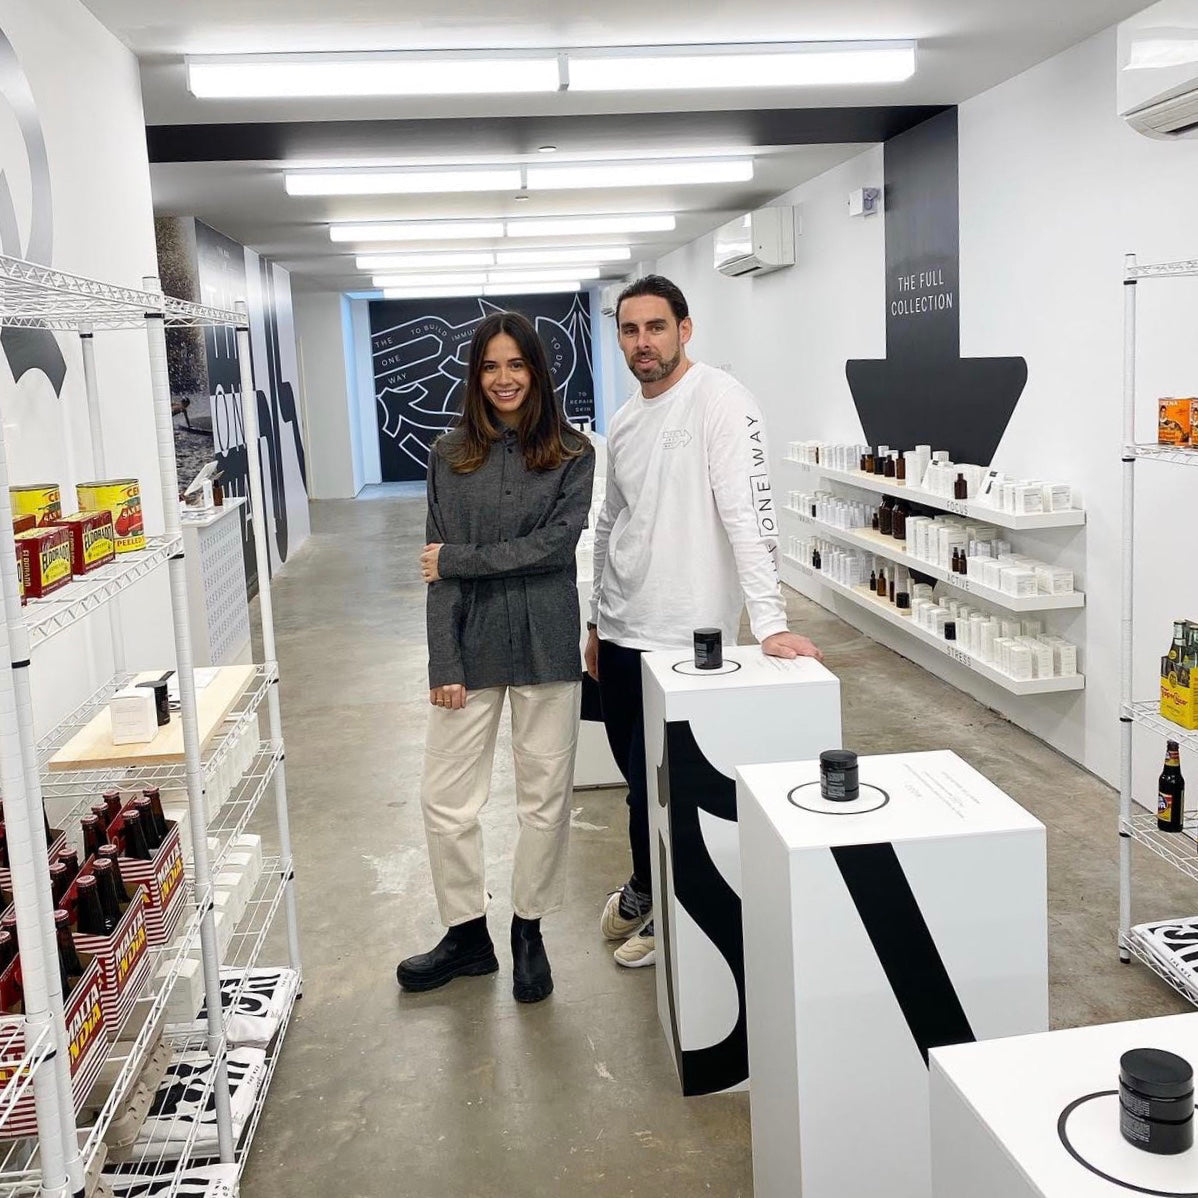 Charlie Gower and Jules Miller in the retail space of The Nue Co.